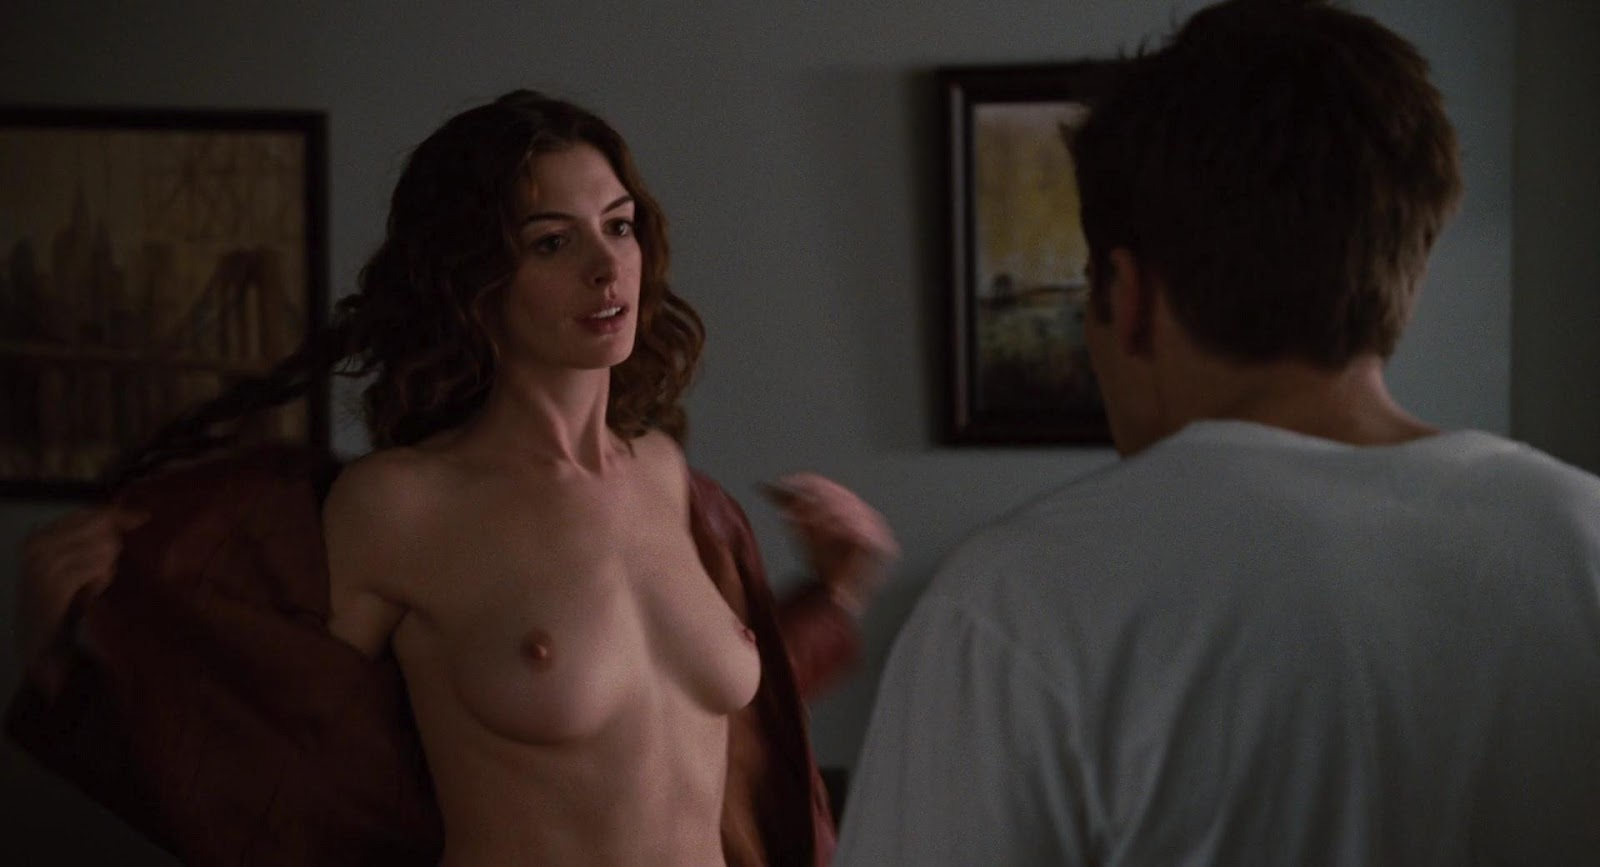 http://4.bp.blogspot.com/-eLweGOzkad0/UDSQzspIwcI/AAAAAAAACIg/nNkCZg9JtlA/s1600/Anne+Hathaway+-+Love+and+Other+Drugs++1080p07.jpg